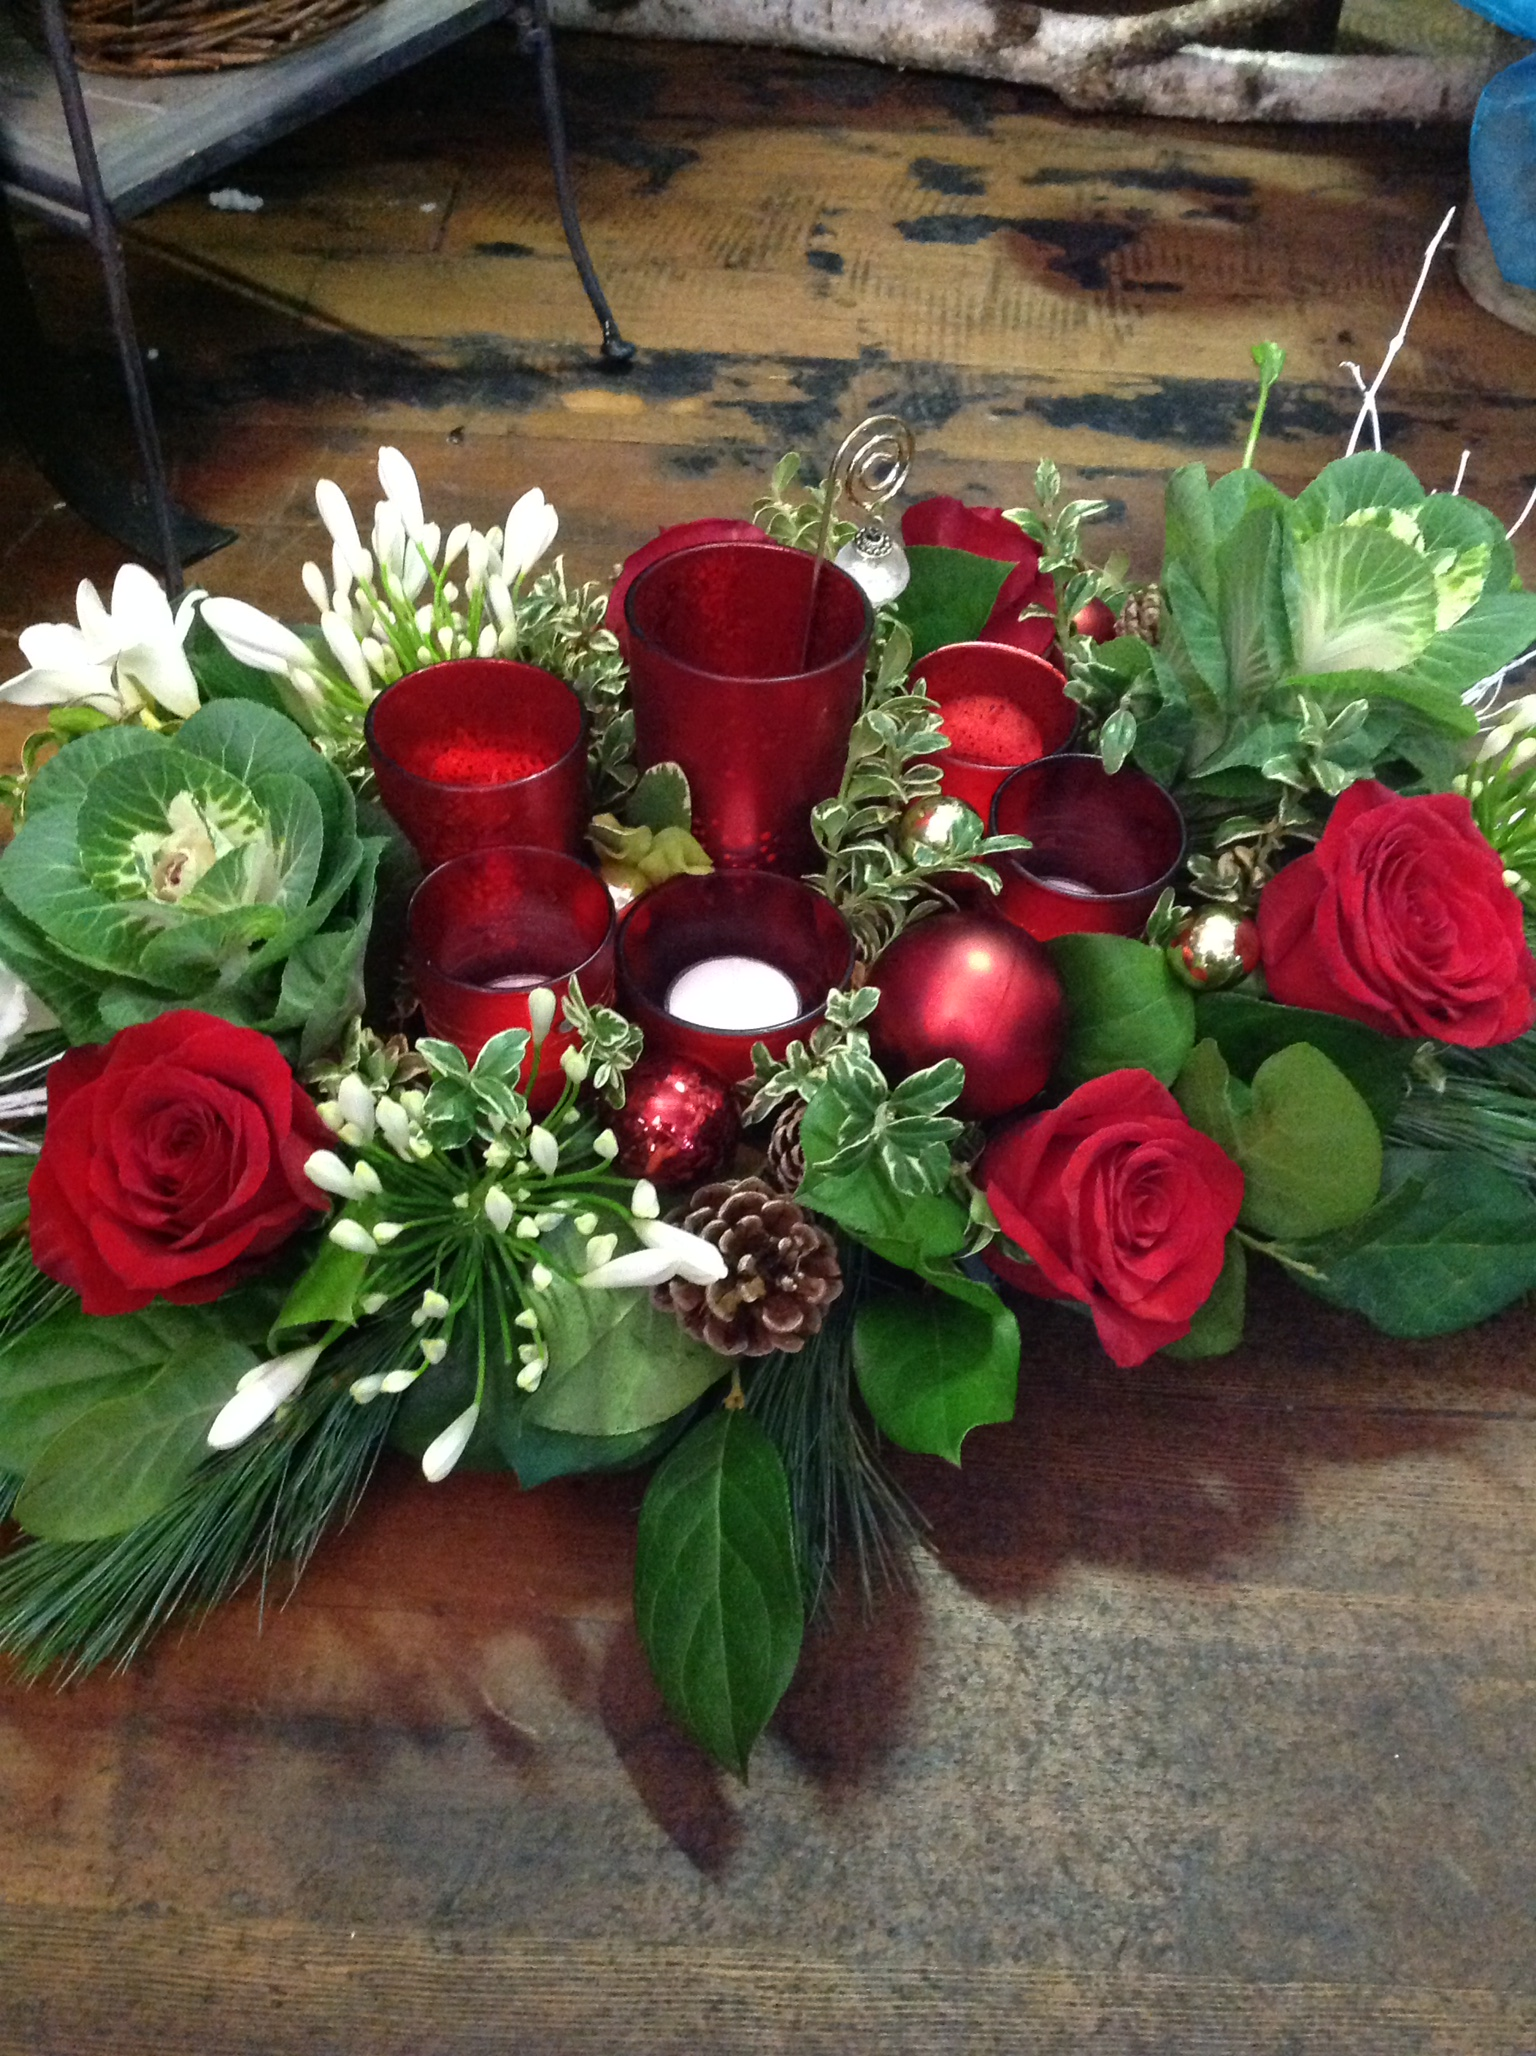 3. Christmas Centerpiece with Red Votive Candles